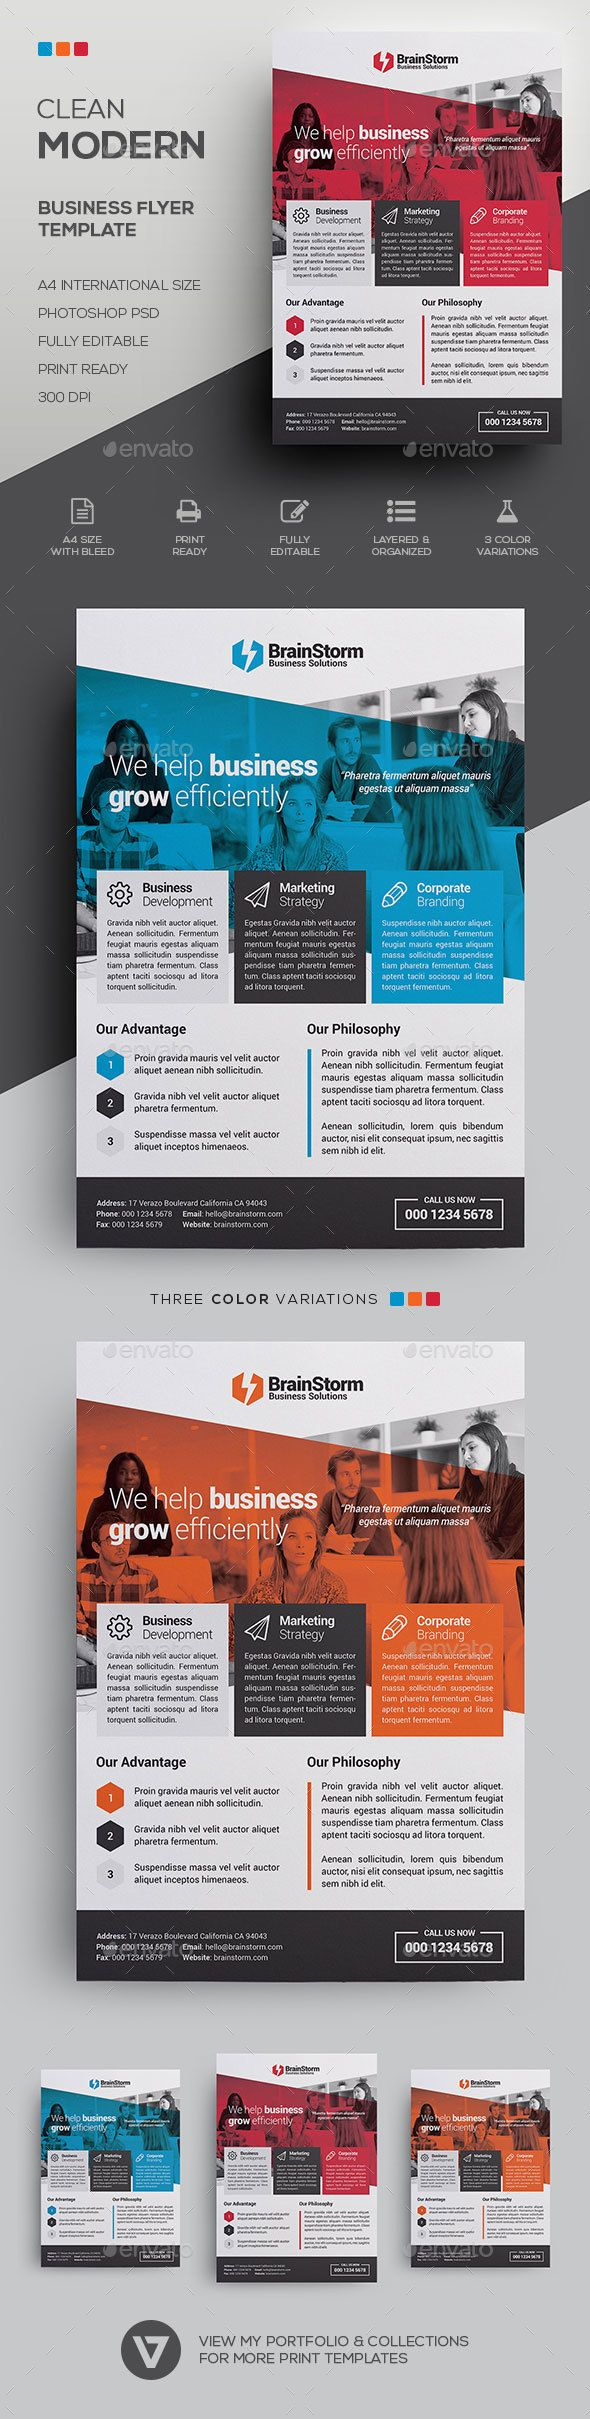 business flyer examples